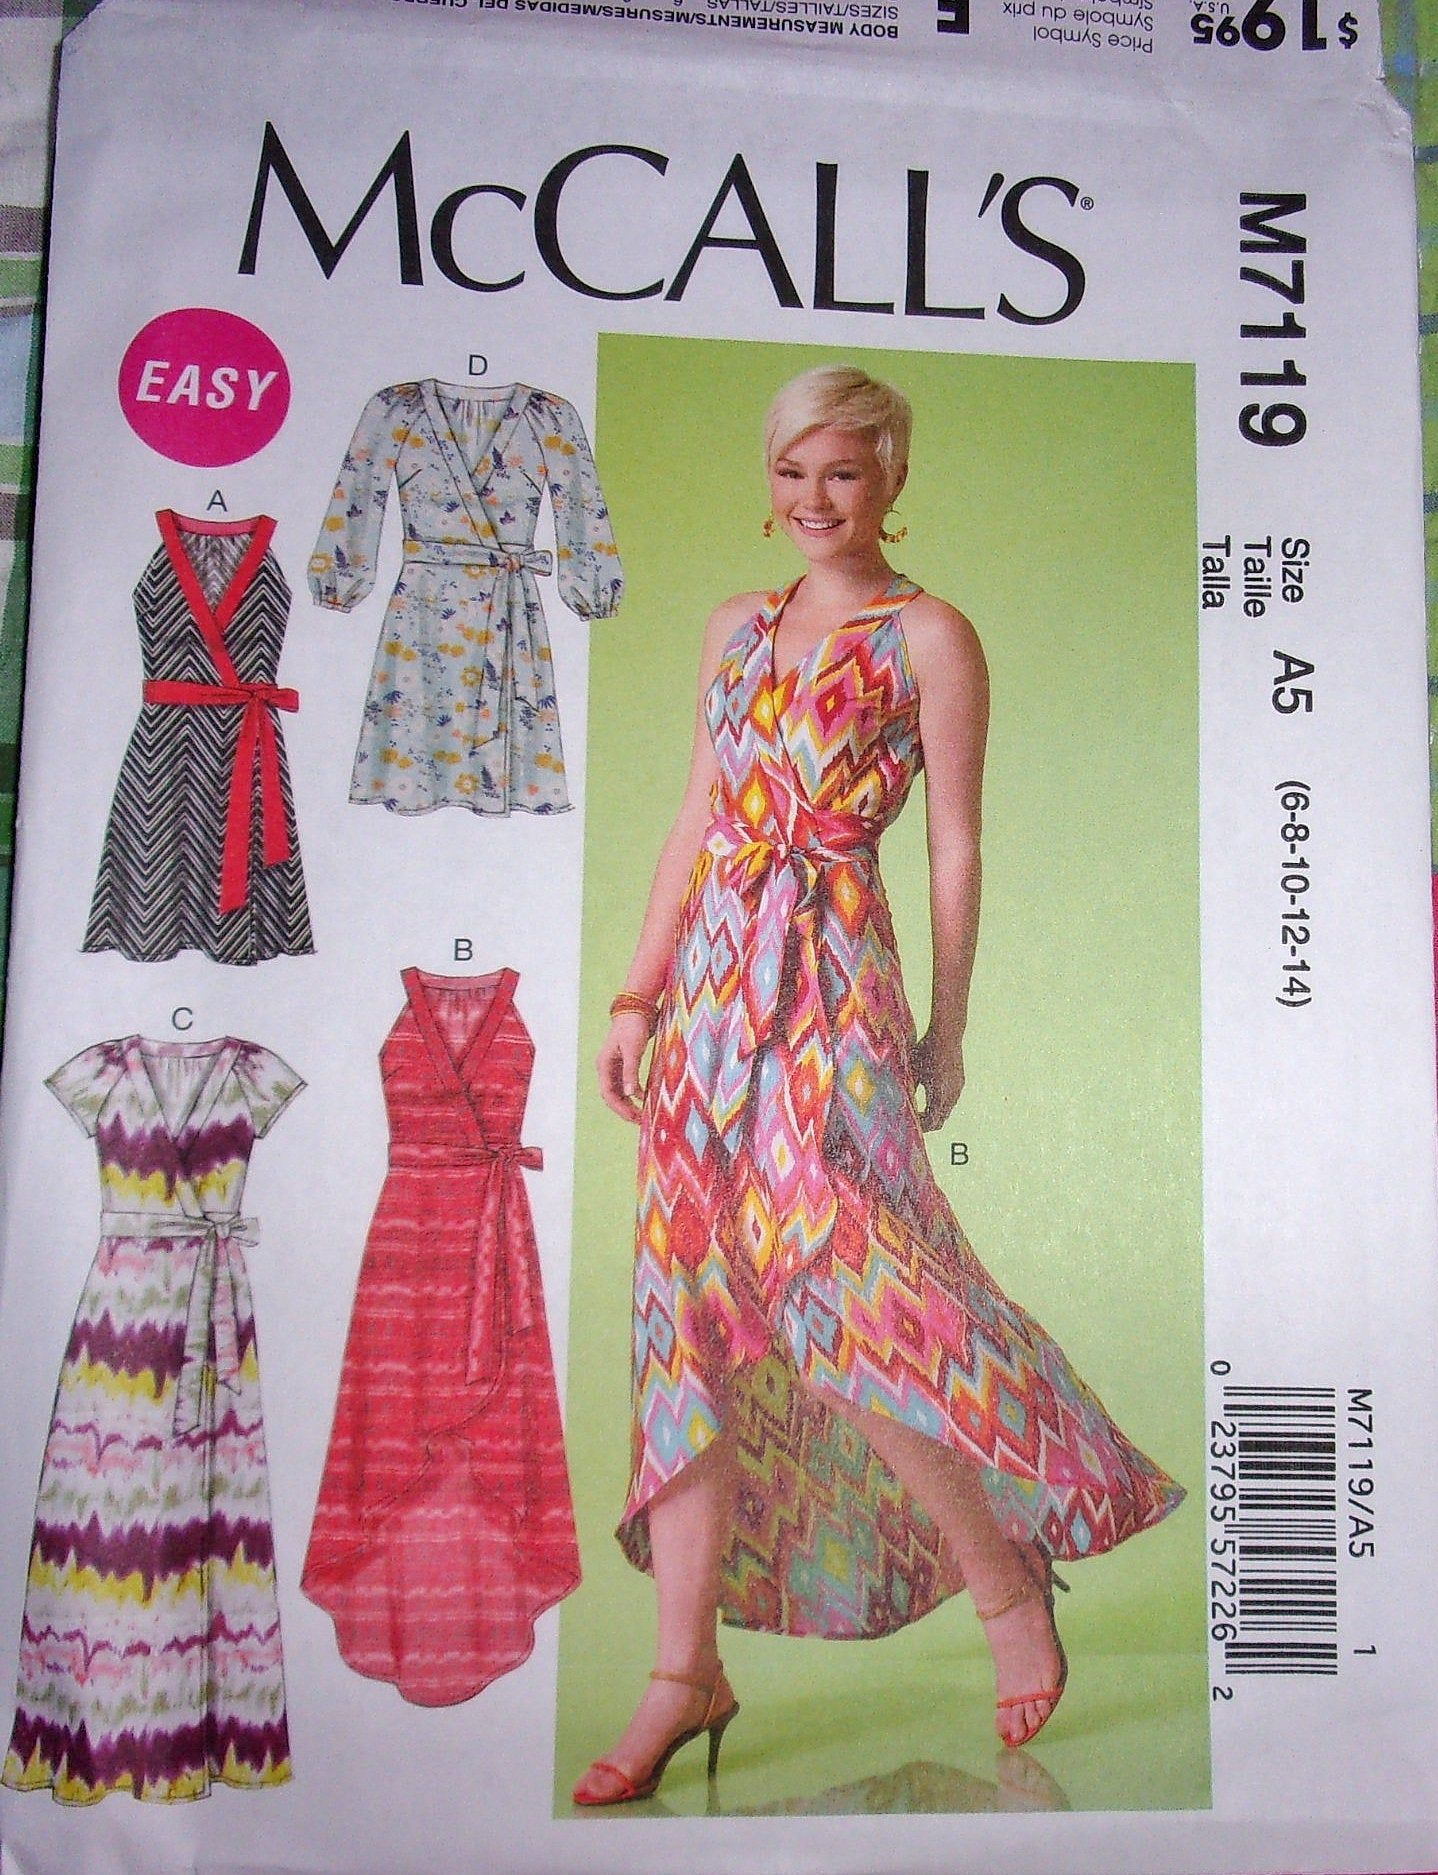 Mccall S 7119 Wrap Dress Maxi Gown Easy Sewing Pattern Tie Etsy Wrap Dress Sewing Patterns Fashion Sewing Wrap Dress Pattern [ 1875 x 1438 Pixel ]